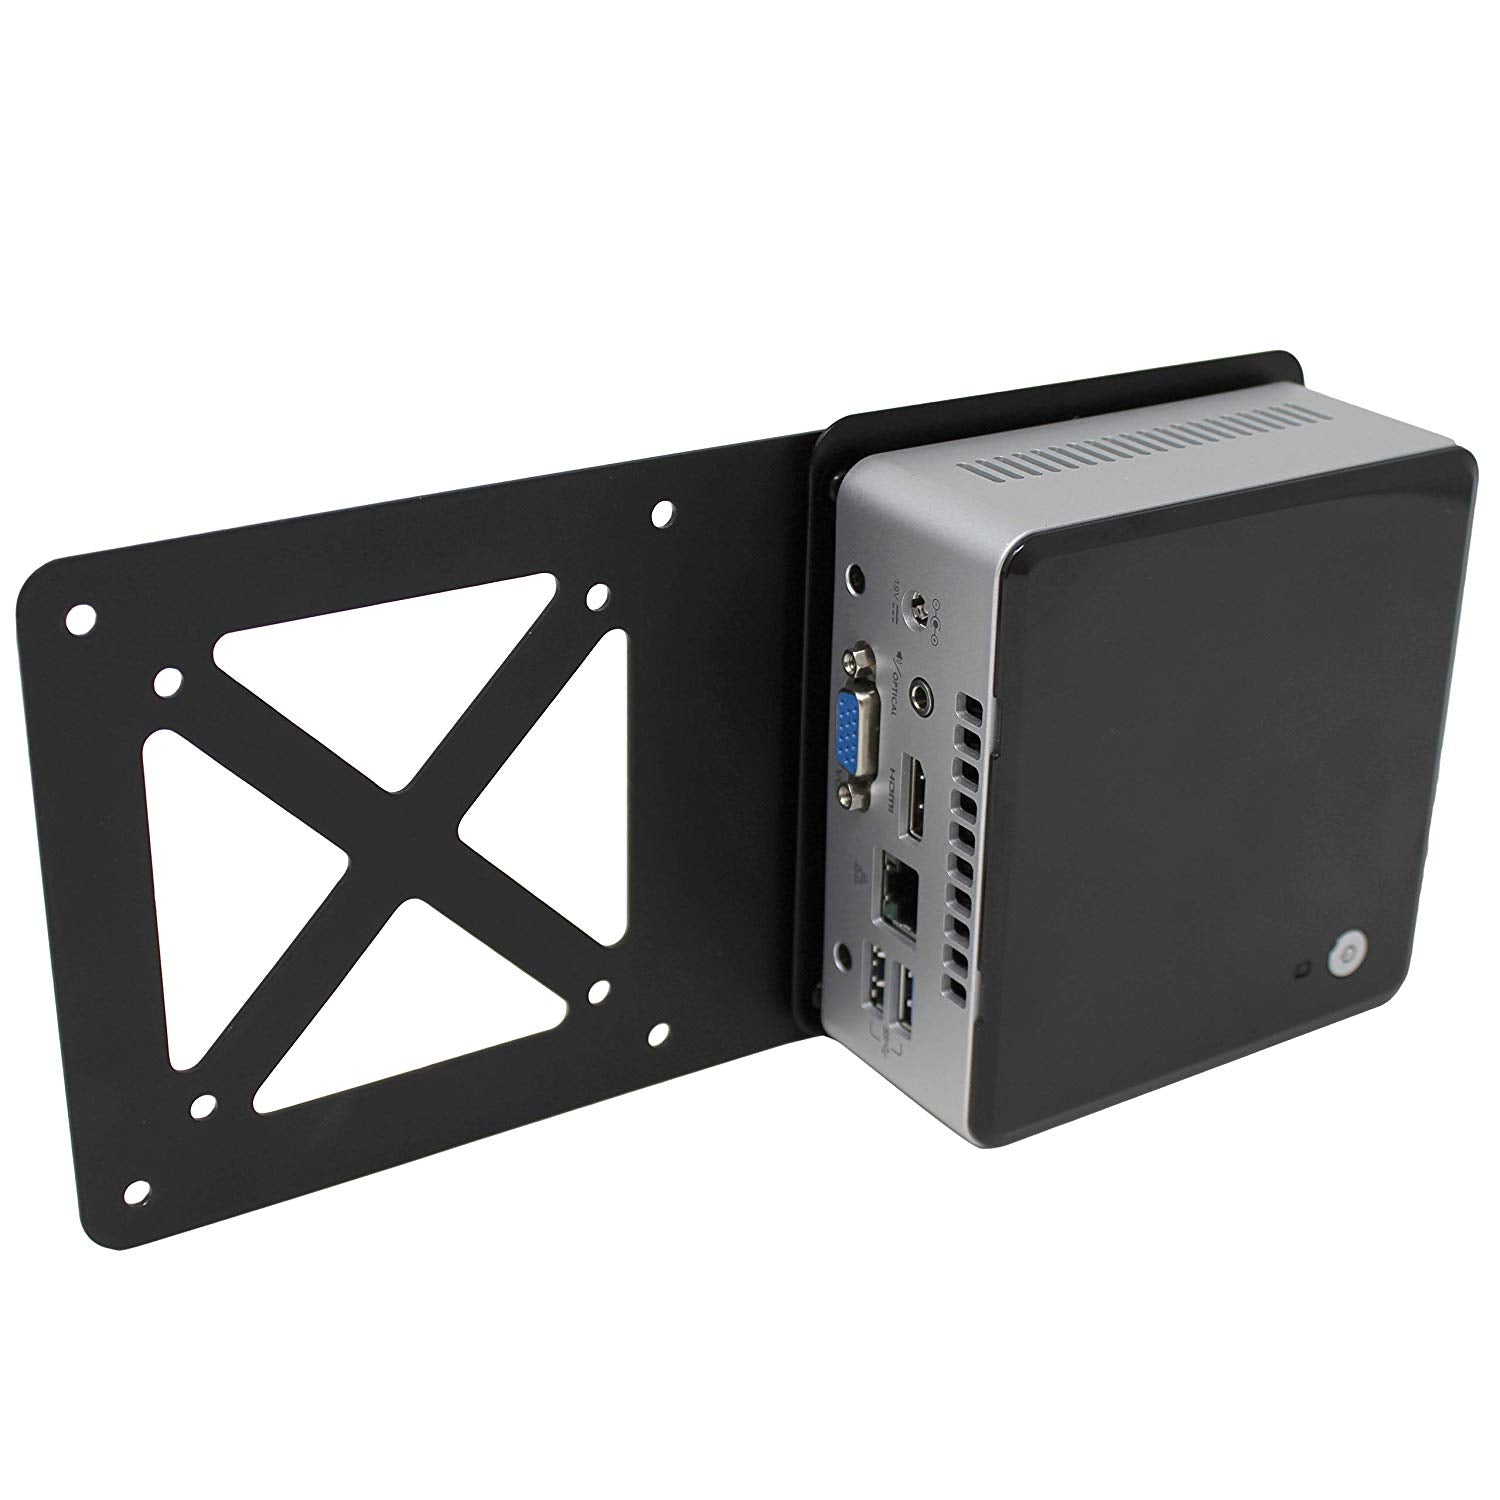 VESA Mount Adapter Plate for Intel NUC